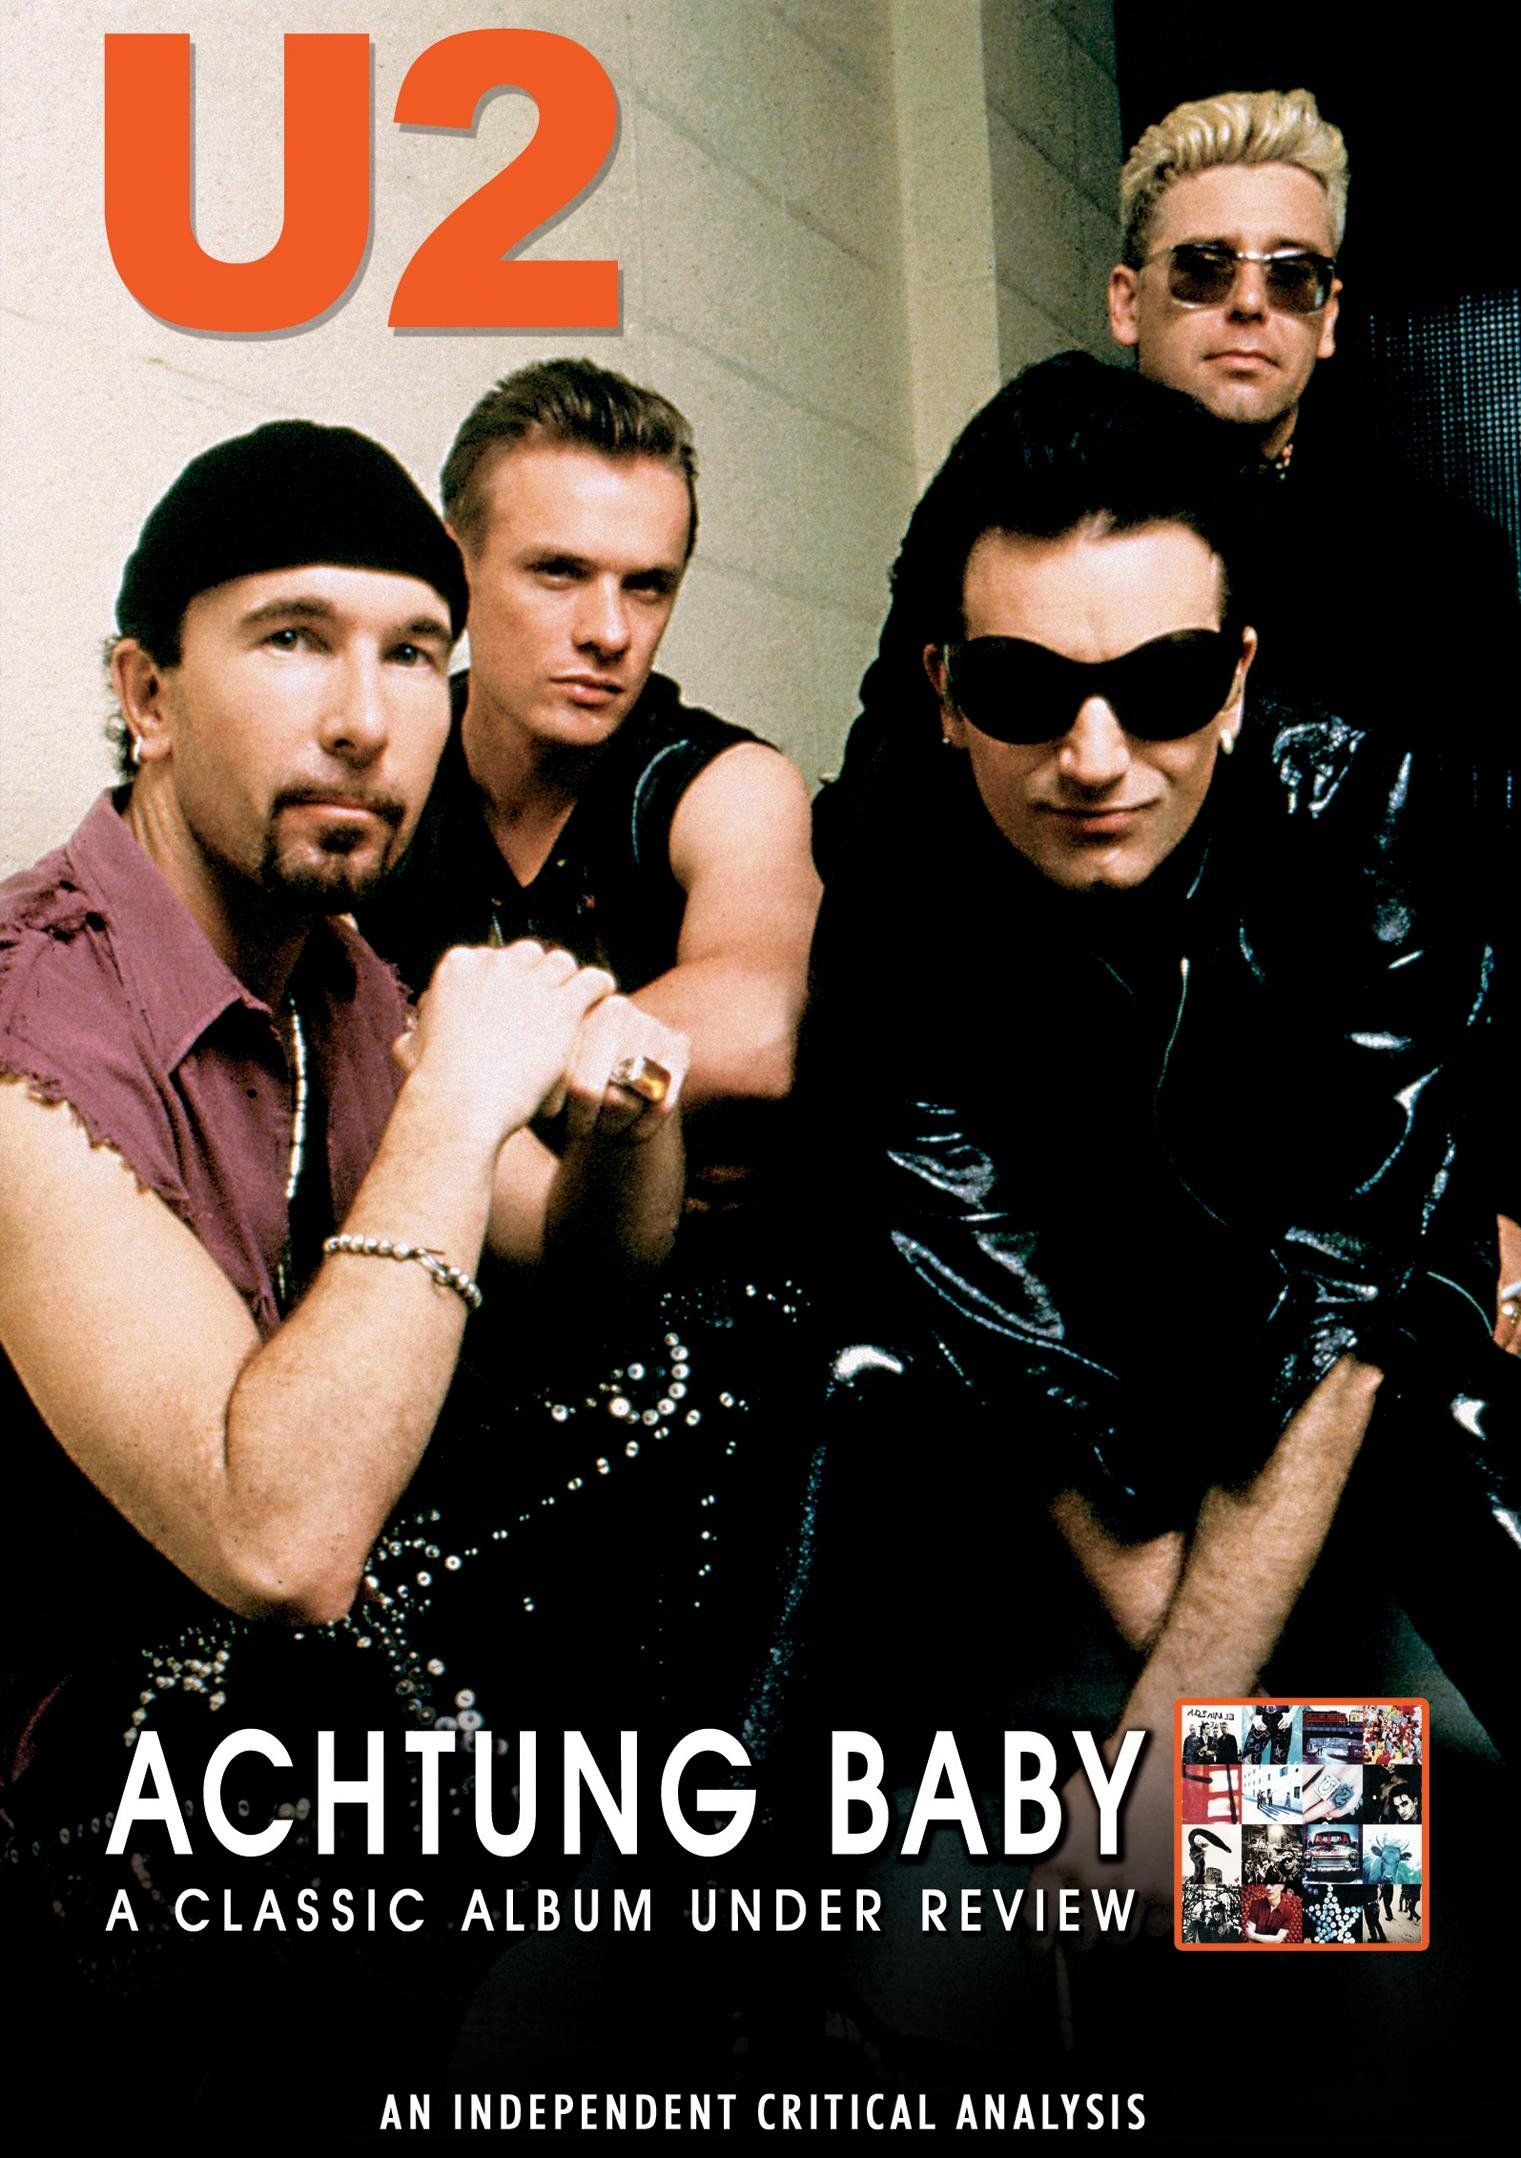 Pin by Lilly Marie on U2 | Achtung baby, Best albums